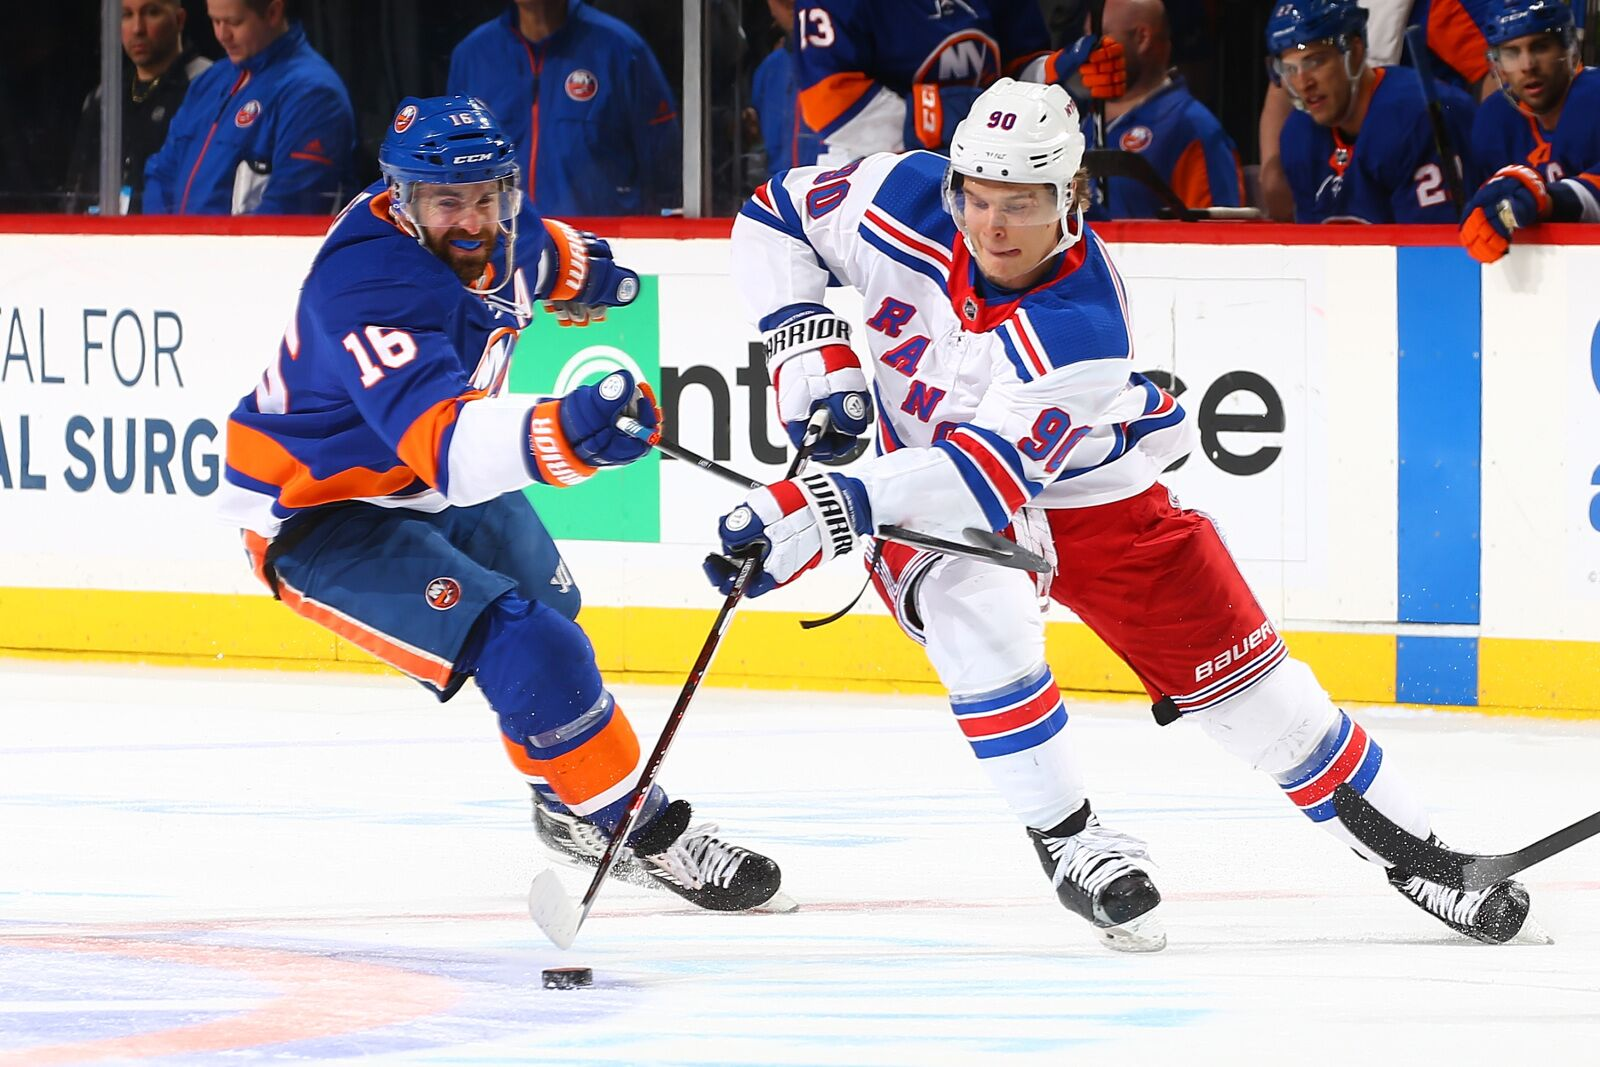 942450510-new-york-rangers-v-new-york-islanders.jpg